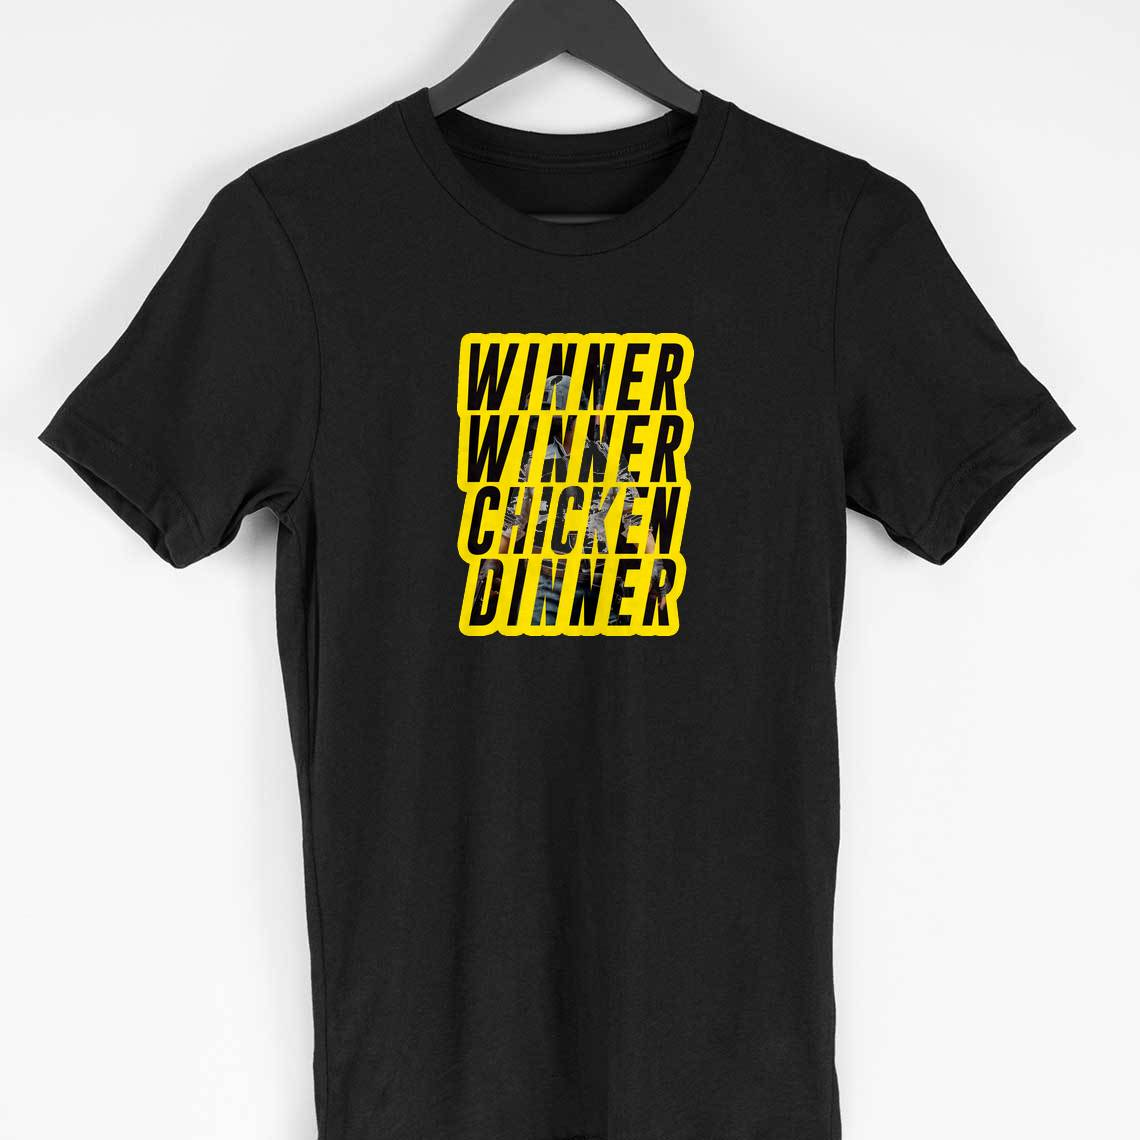 Winner Winner Chicken Dinner T-shirt (Black)